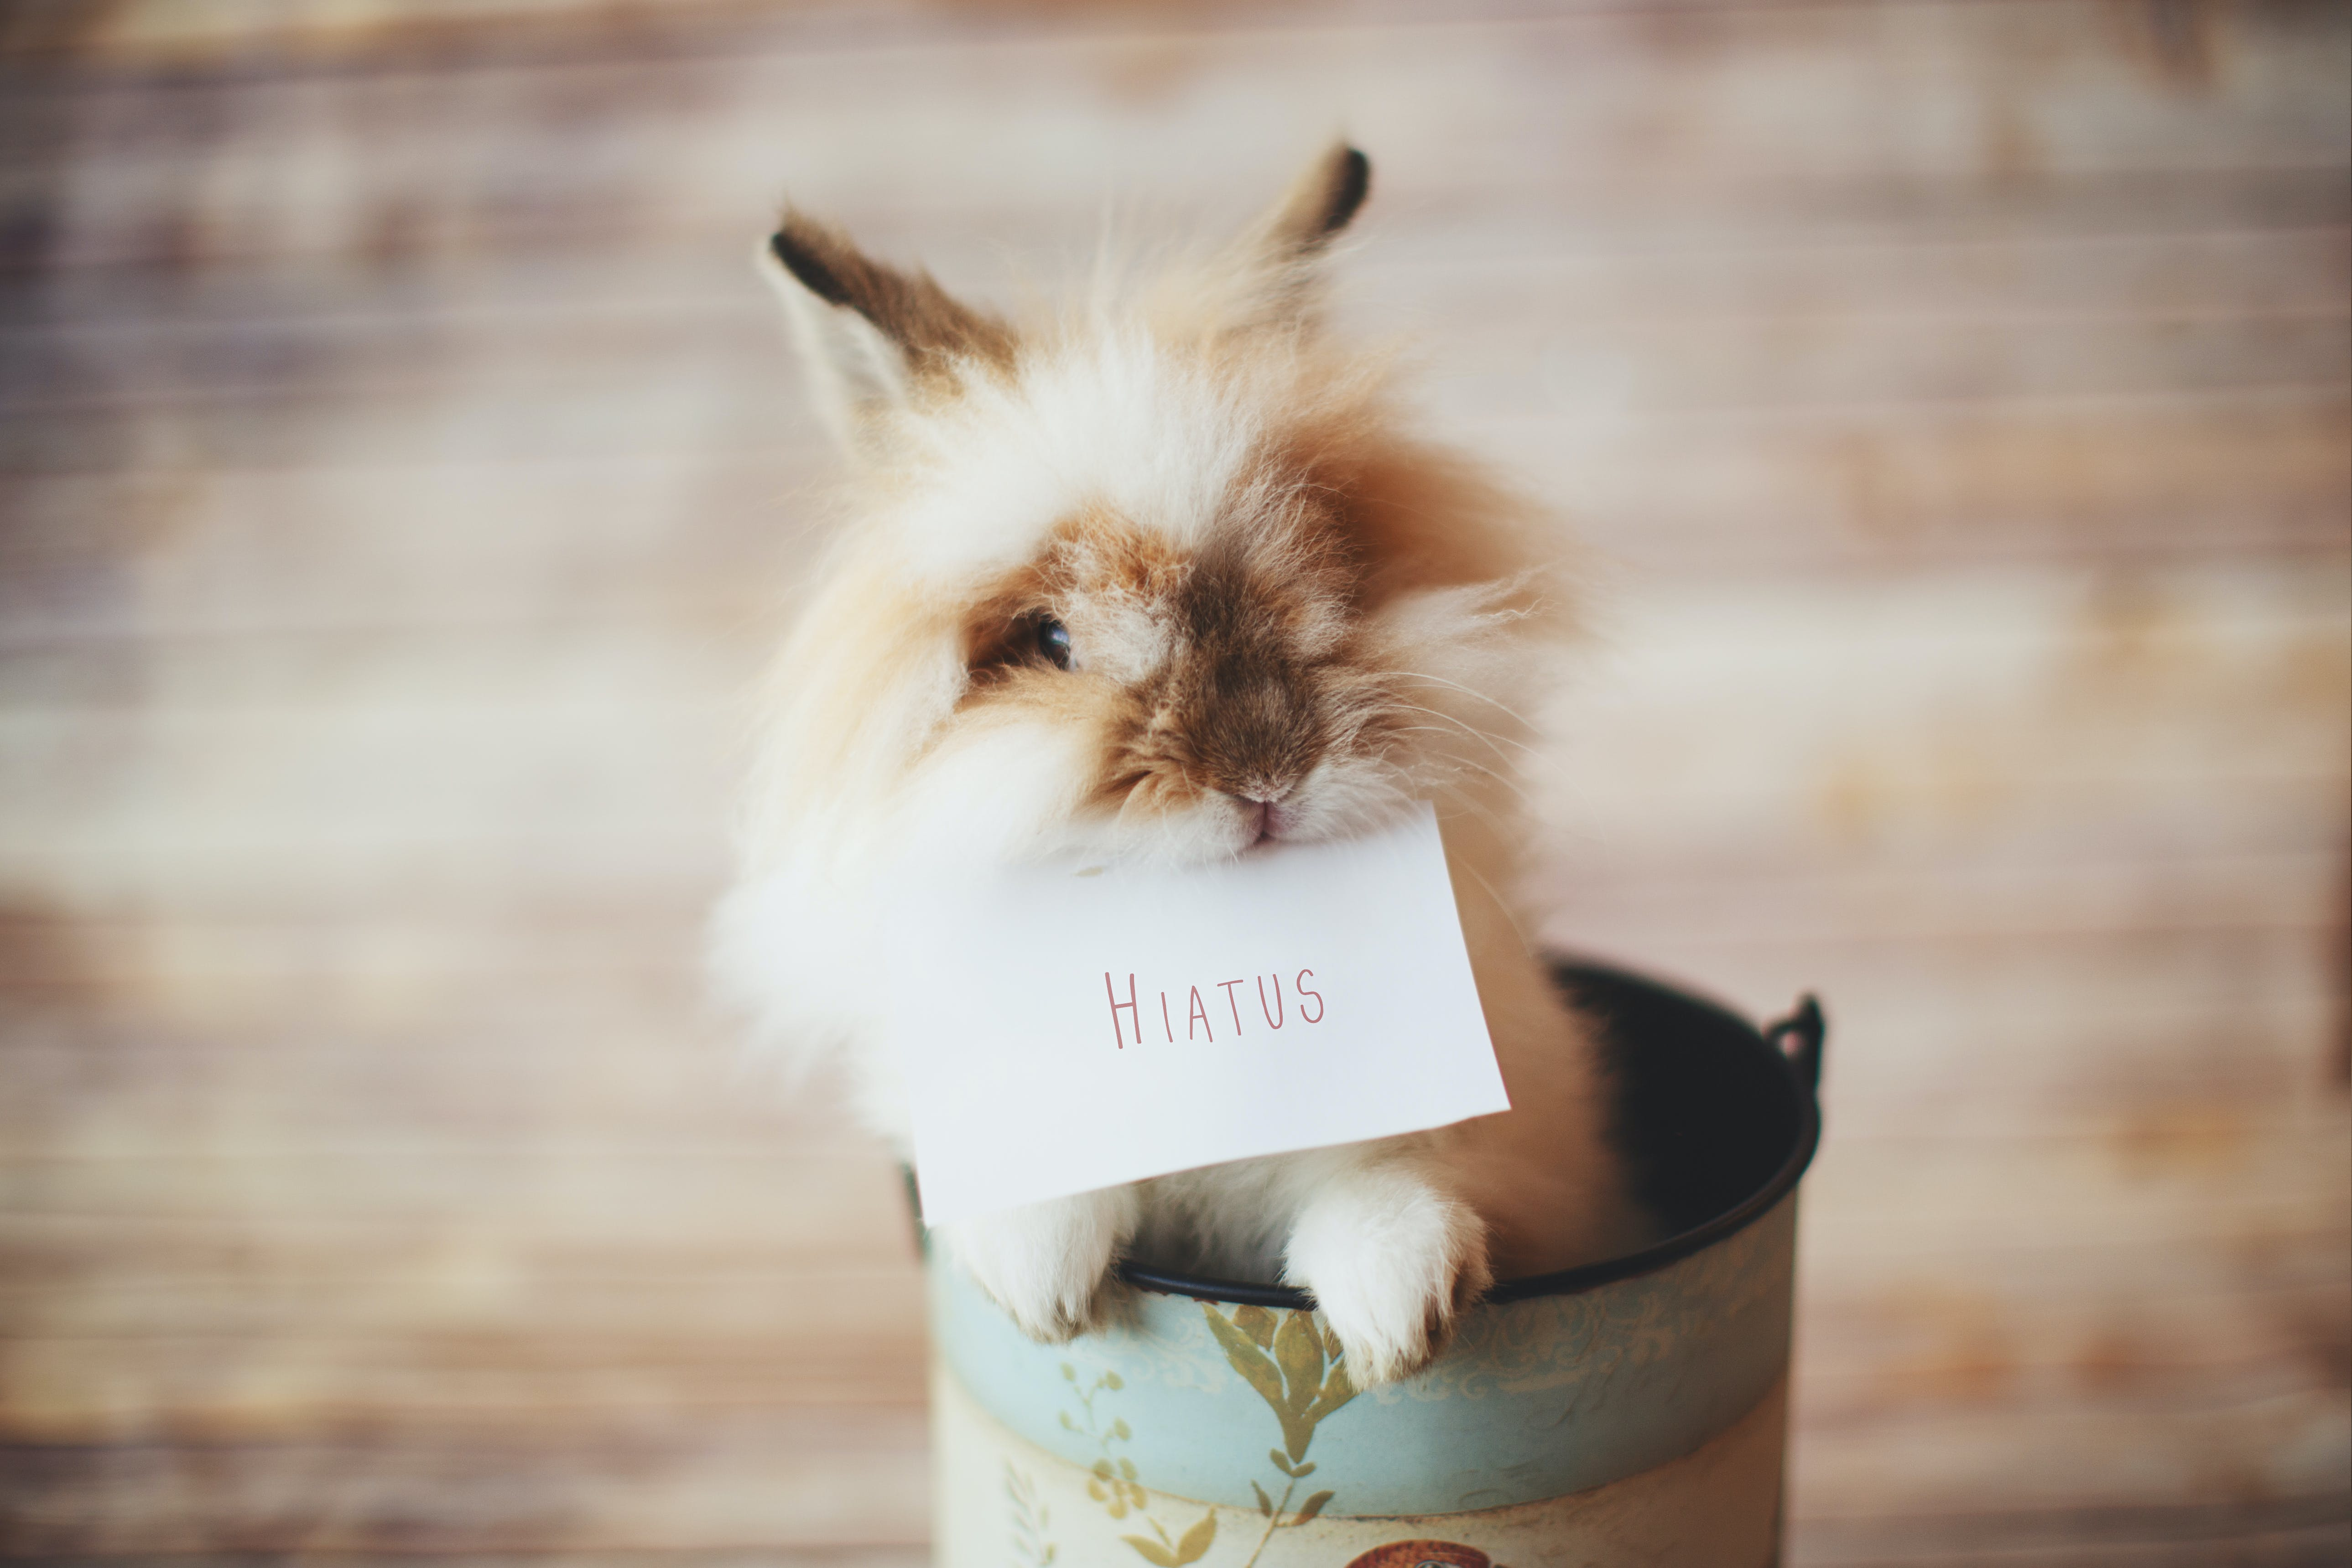 Selective Focus Photo of Guinea Pig Holding Card